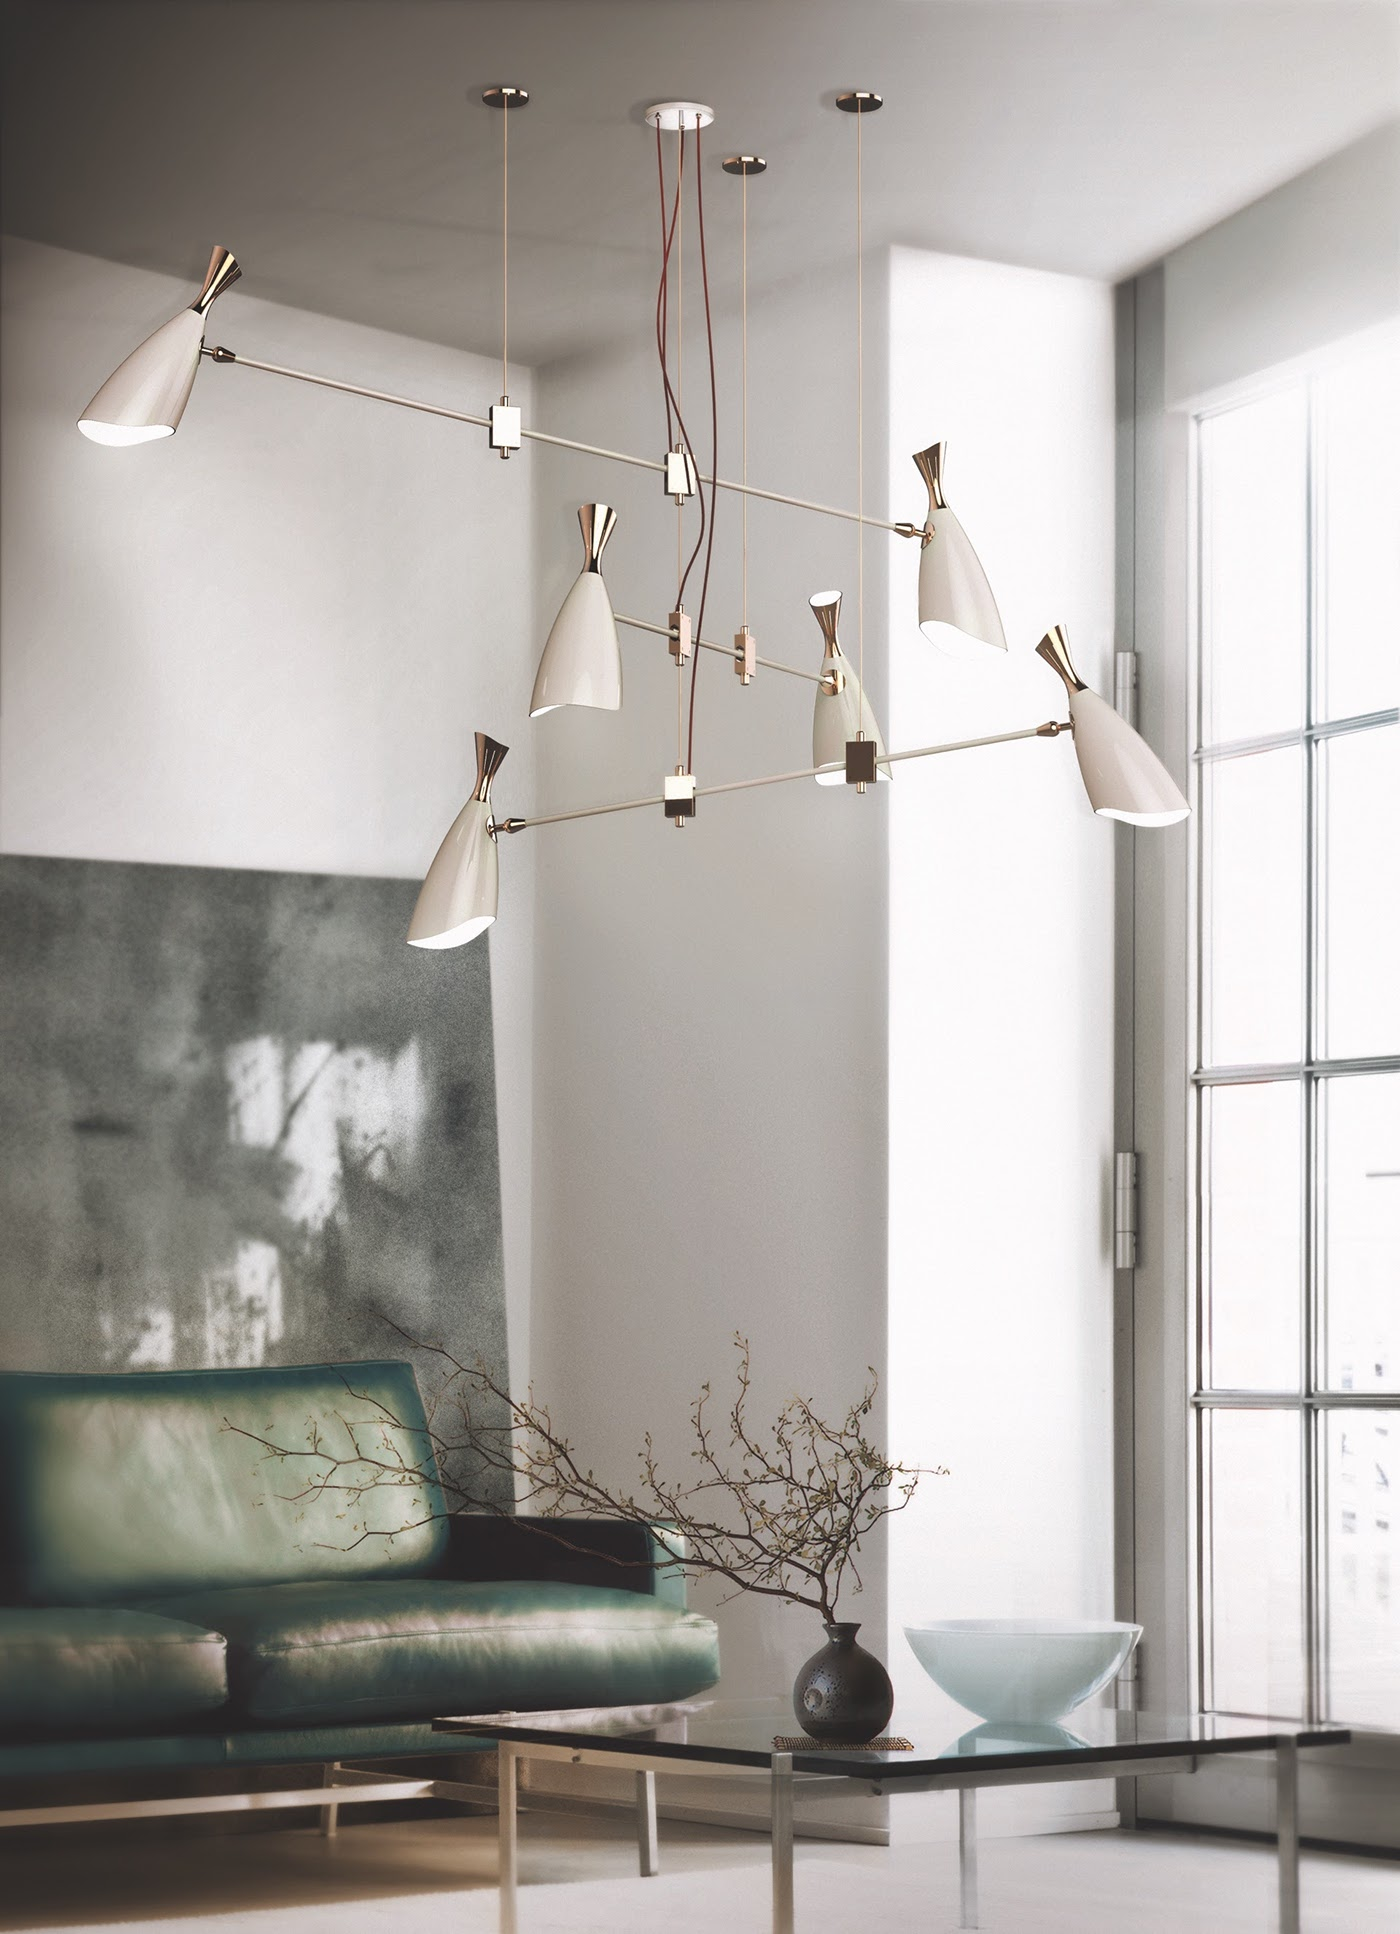 Stunning Contemporary Lighting Designs for Your Modern Home Decor 12 lighting design Stunning Contemporary Lighting Designs for Your Modern Home Decor Stunning Contemporary Lighting Designs for Your Modern Home Decor 12